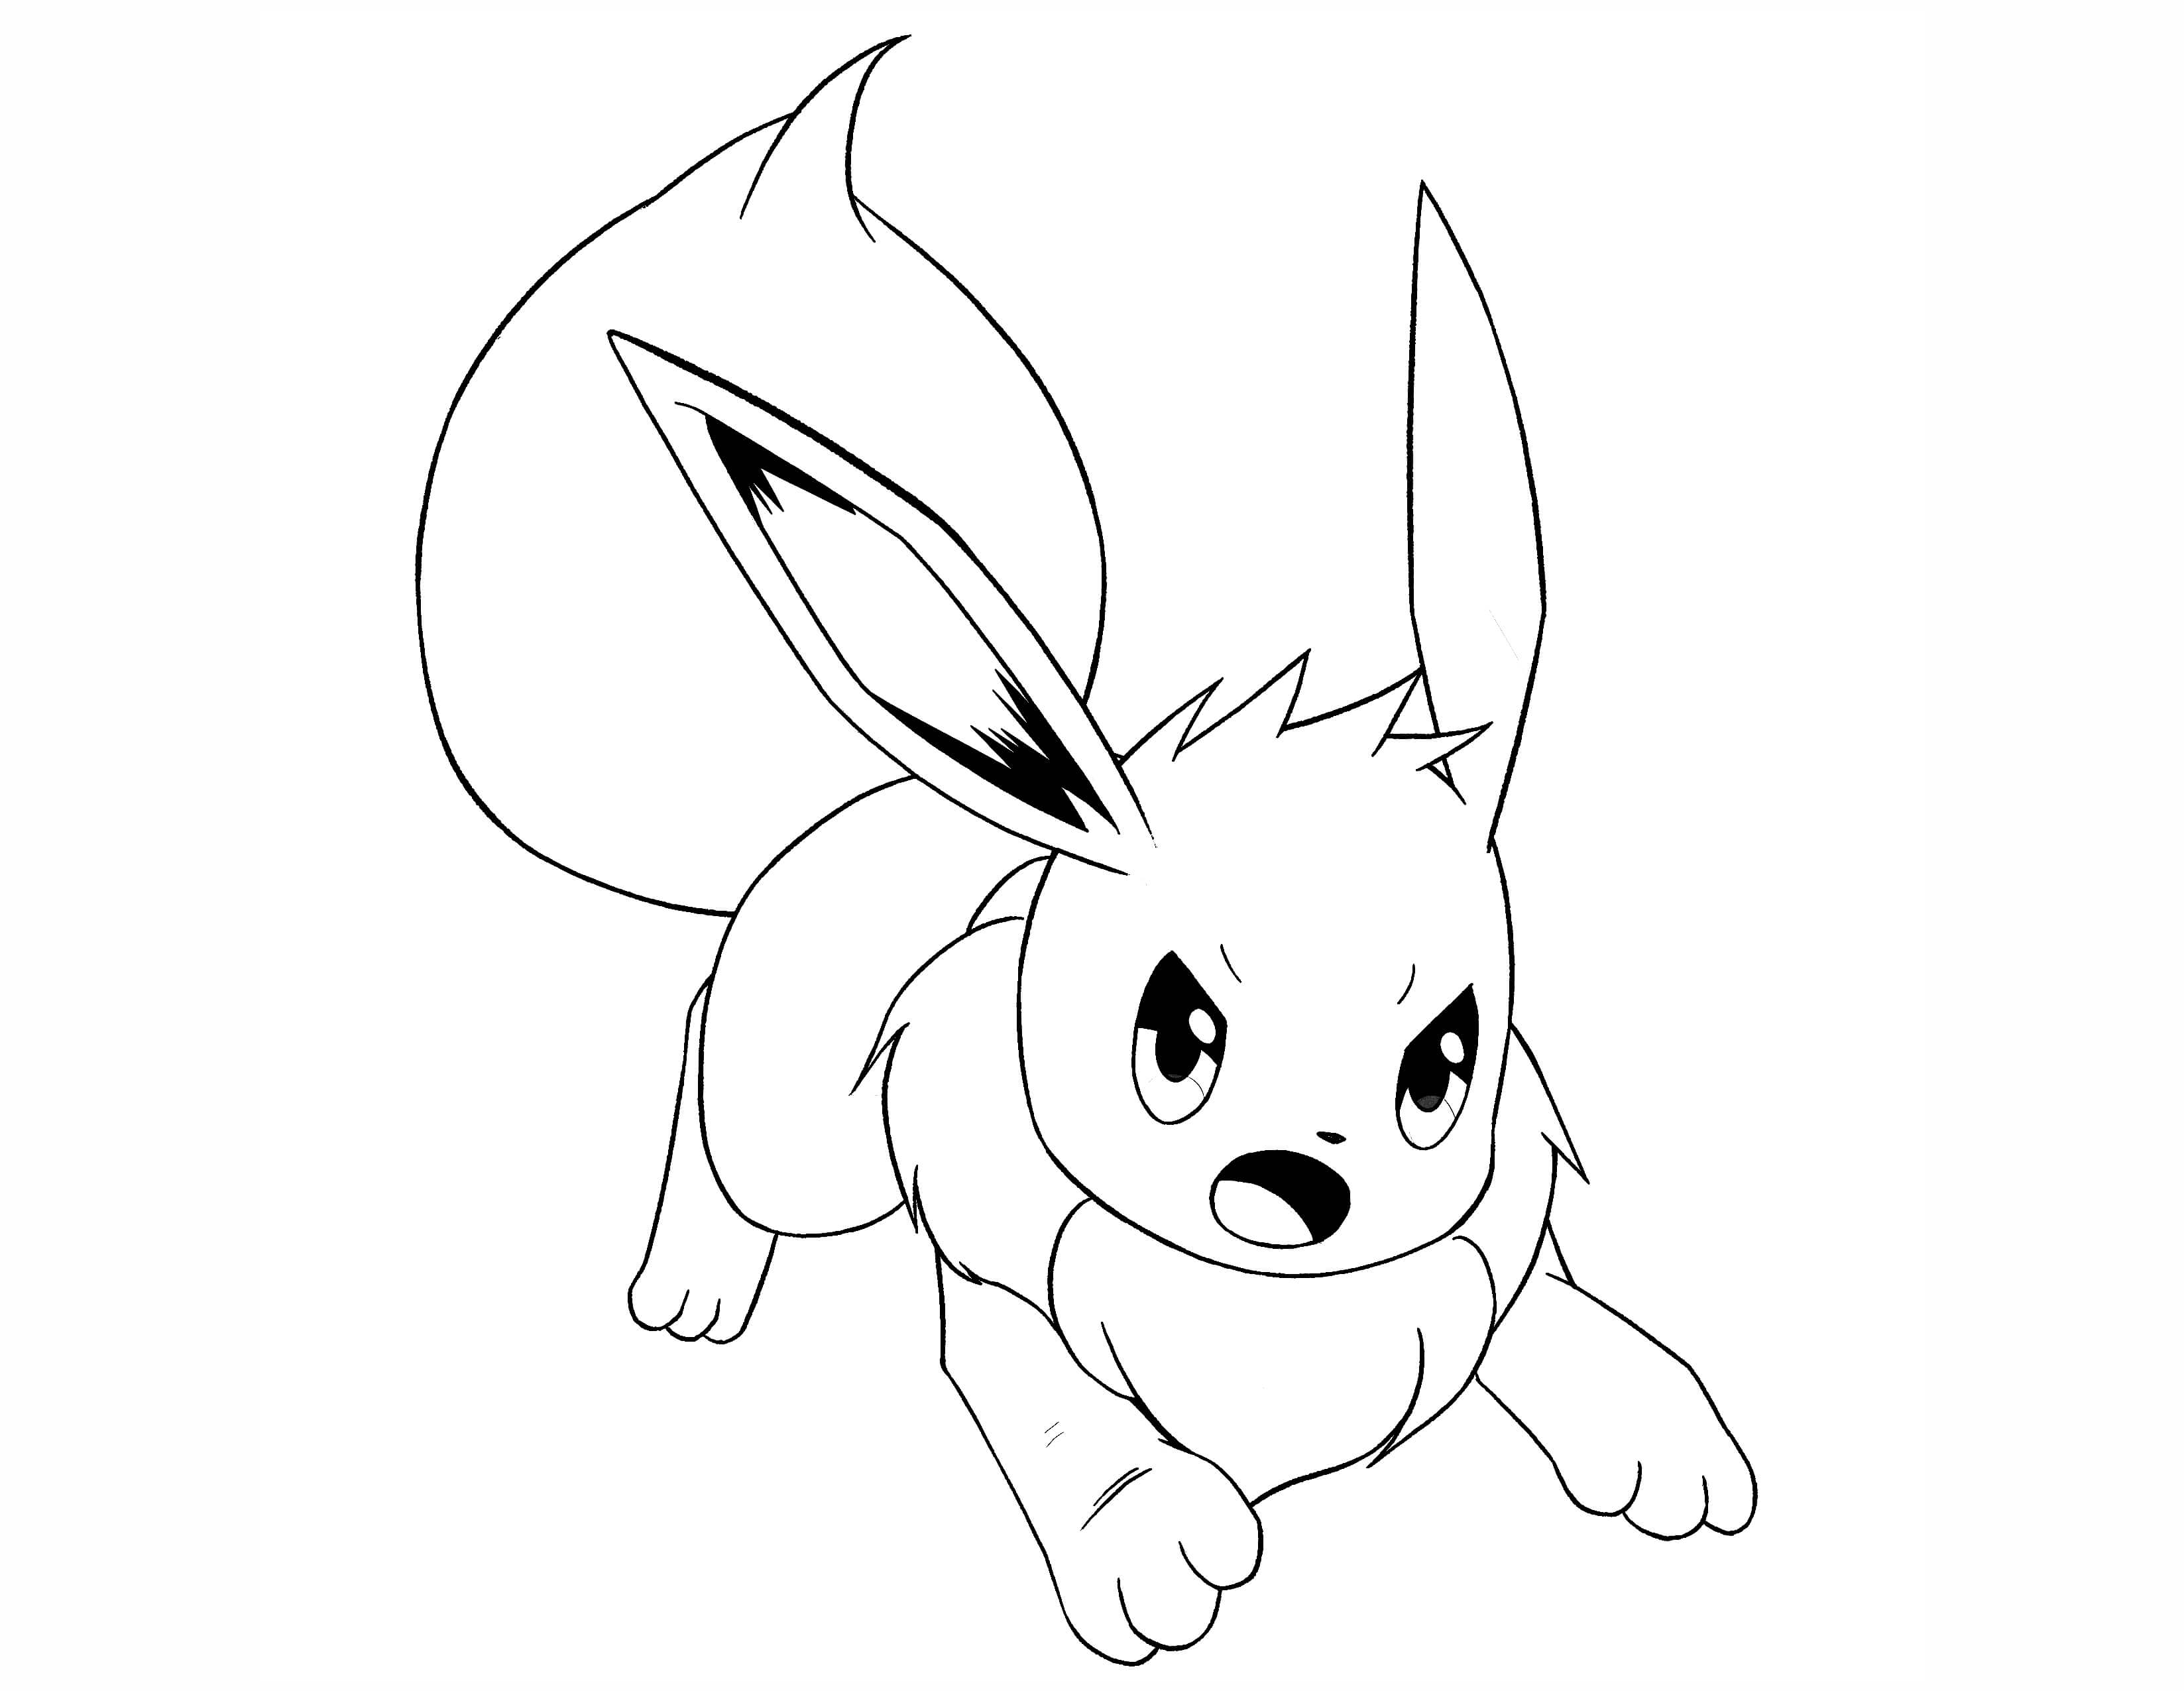 eevee printable coloring pages eevee coloring pages to download and print for free pages eevee coloring printable